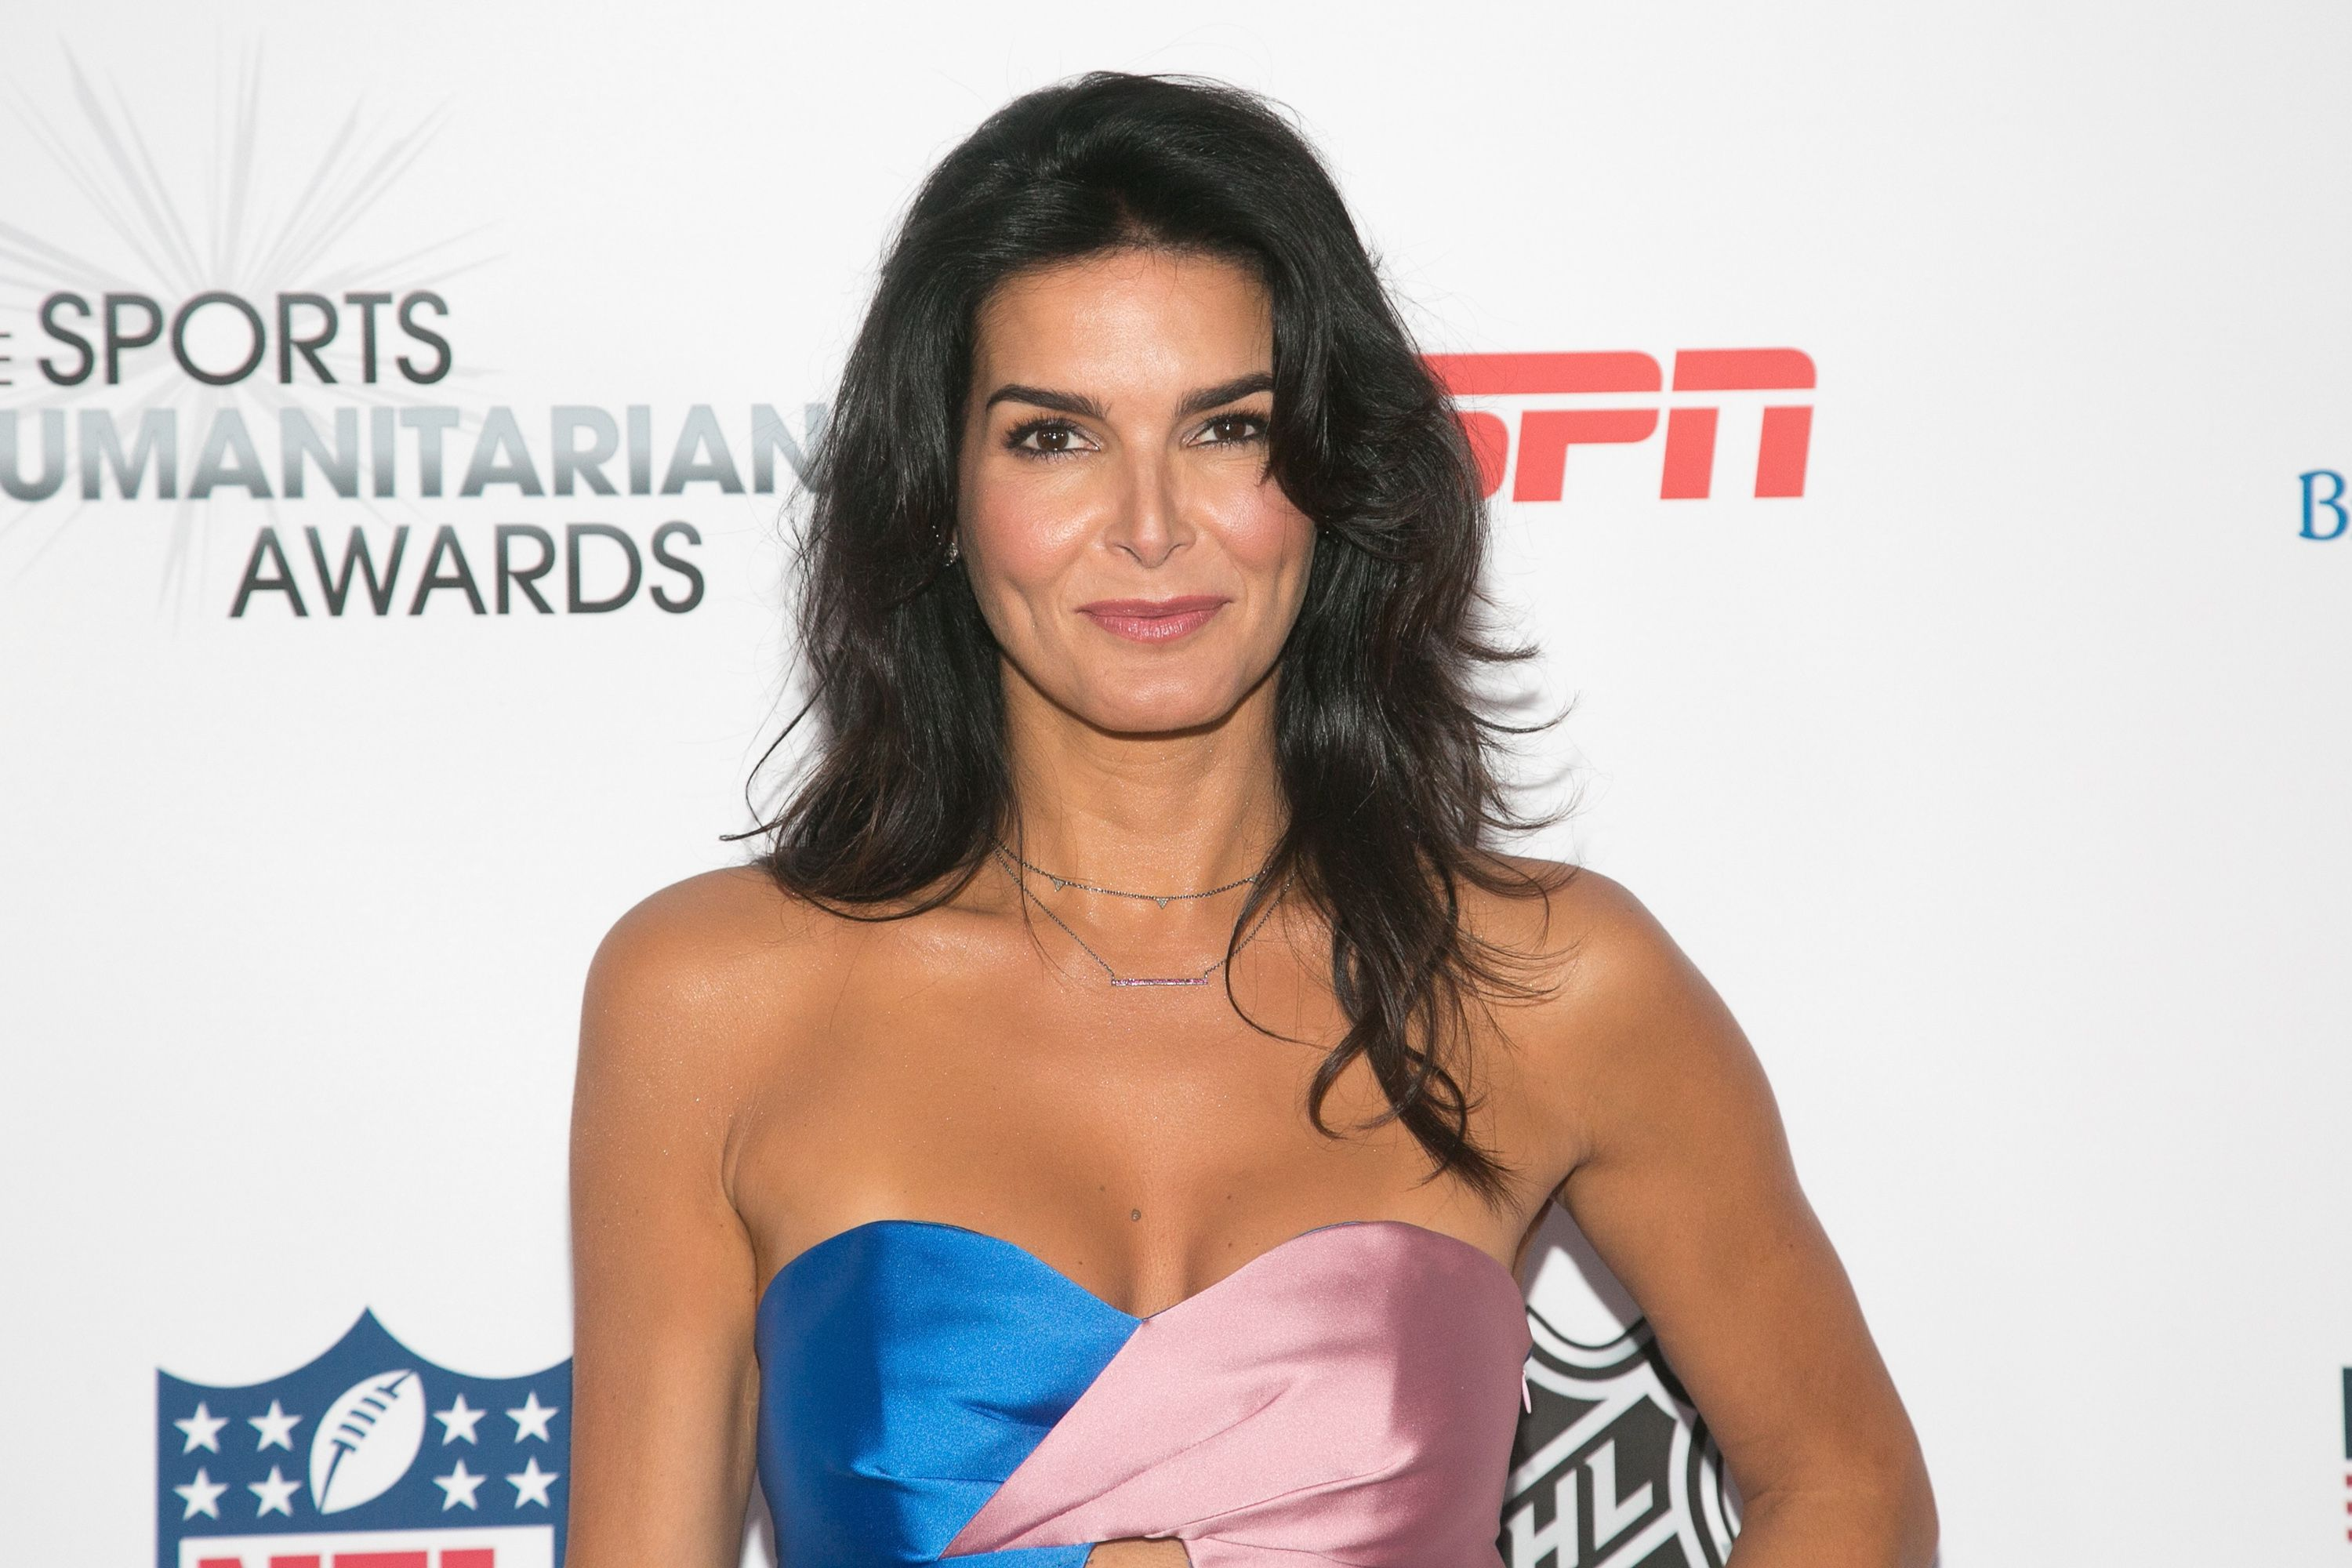 angie harmon is dating — but don't expect to see her on tinder